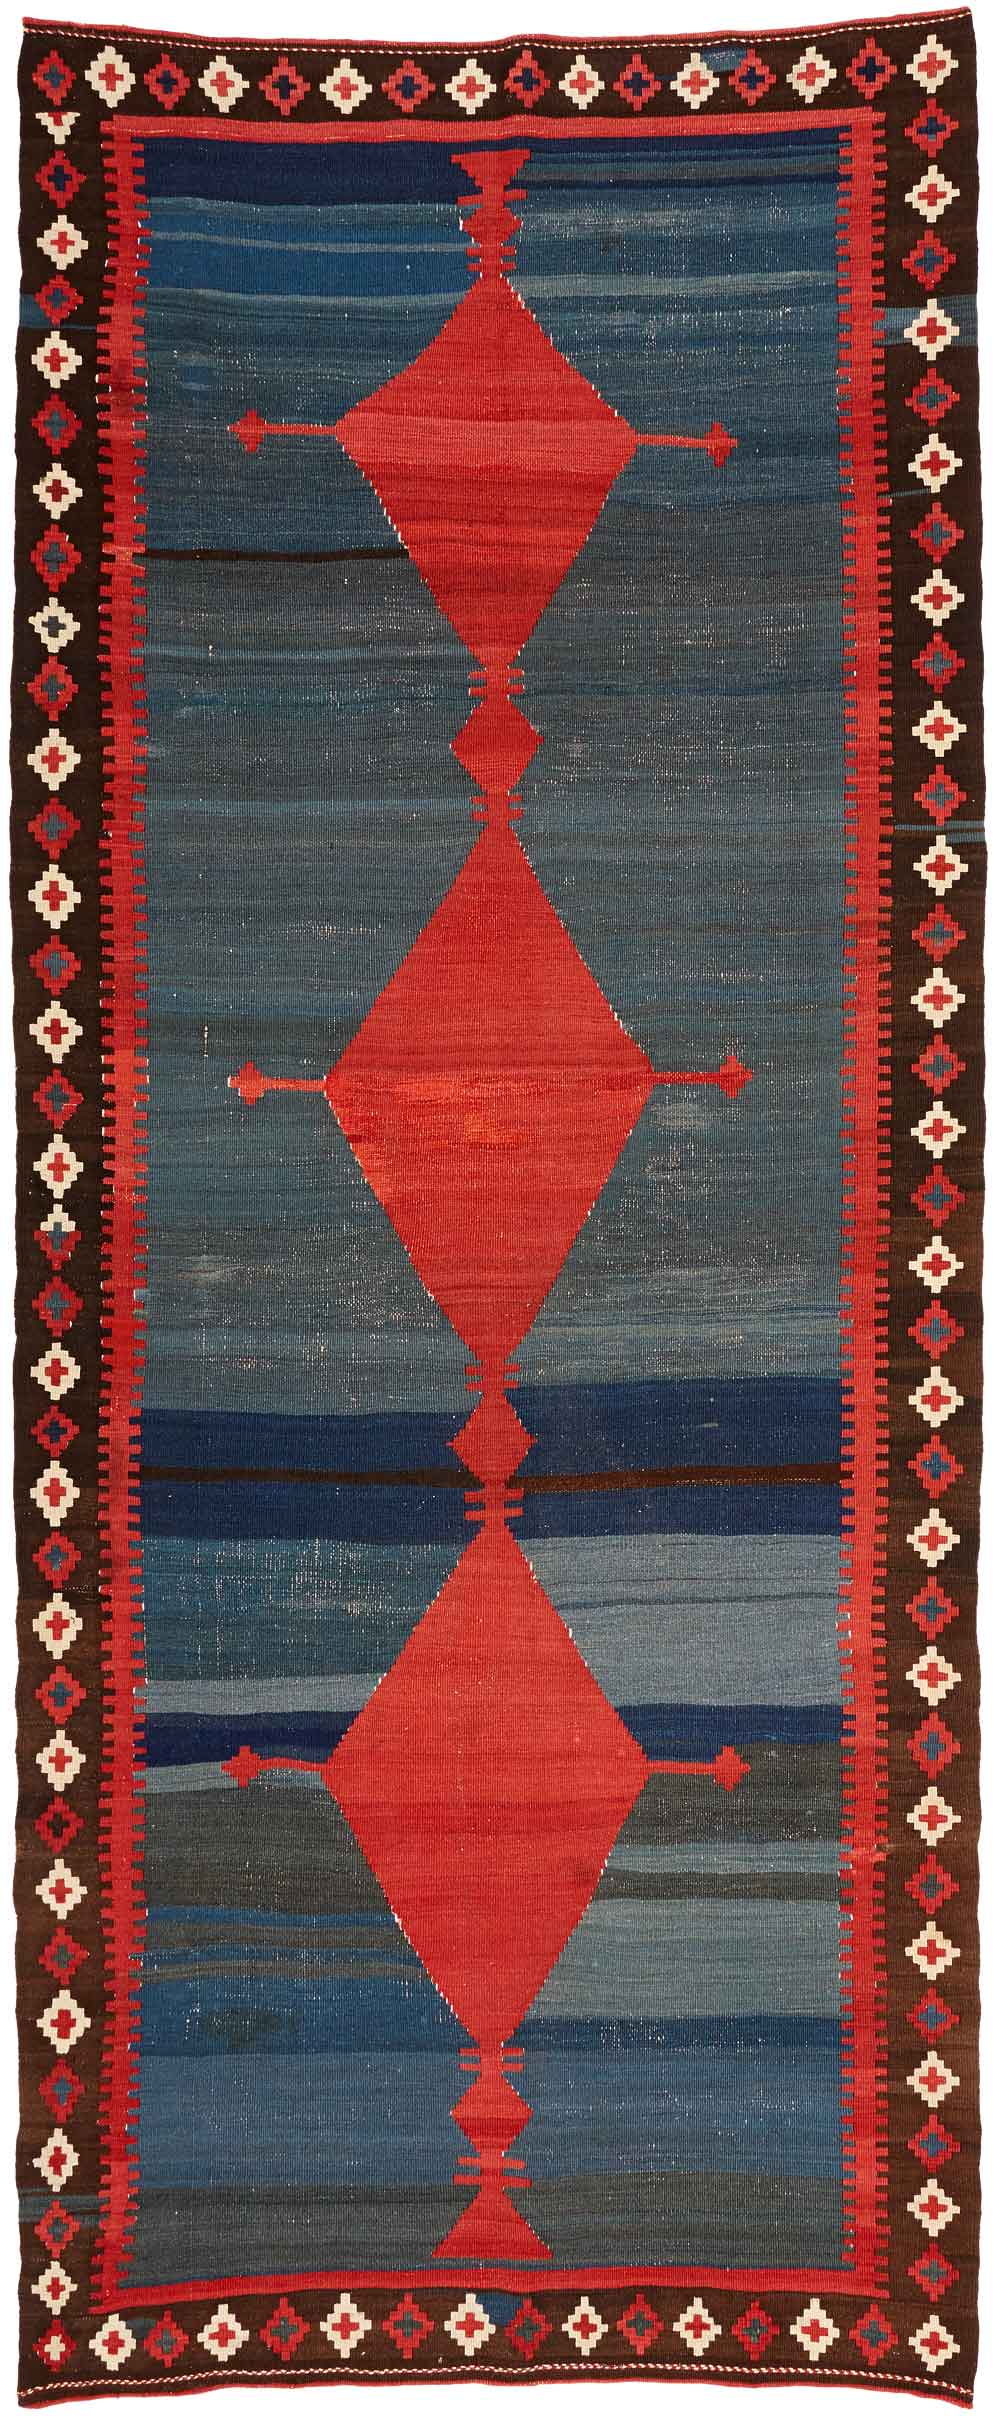 Bijar area kilim, late 19th century, West-Persia, Kurdistan, 205 x 403 cm. An interesting and rare example of a stylised bug-motif. Neiriz Collection on view in 100 Kilims at Halle Germany